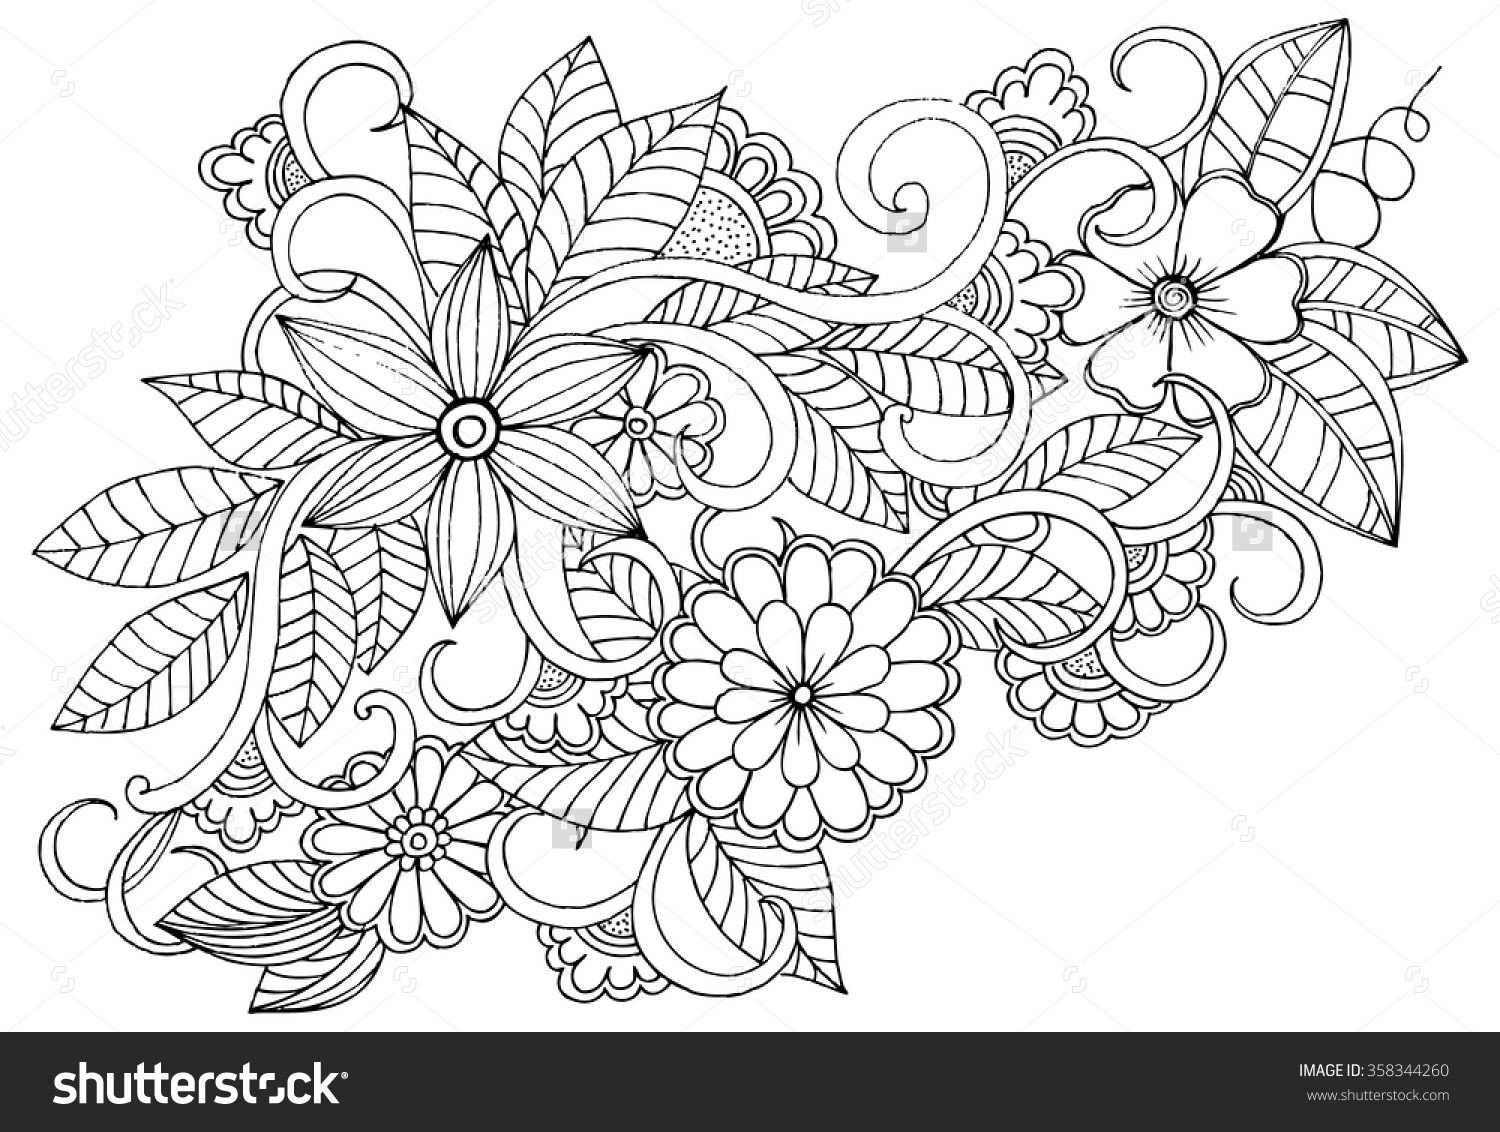 Relaxing Coloring Pages For Kids  Doodle floral pattern in black and white Page for